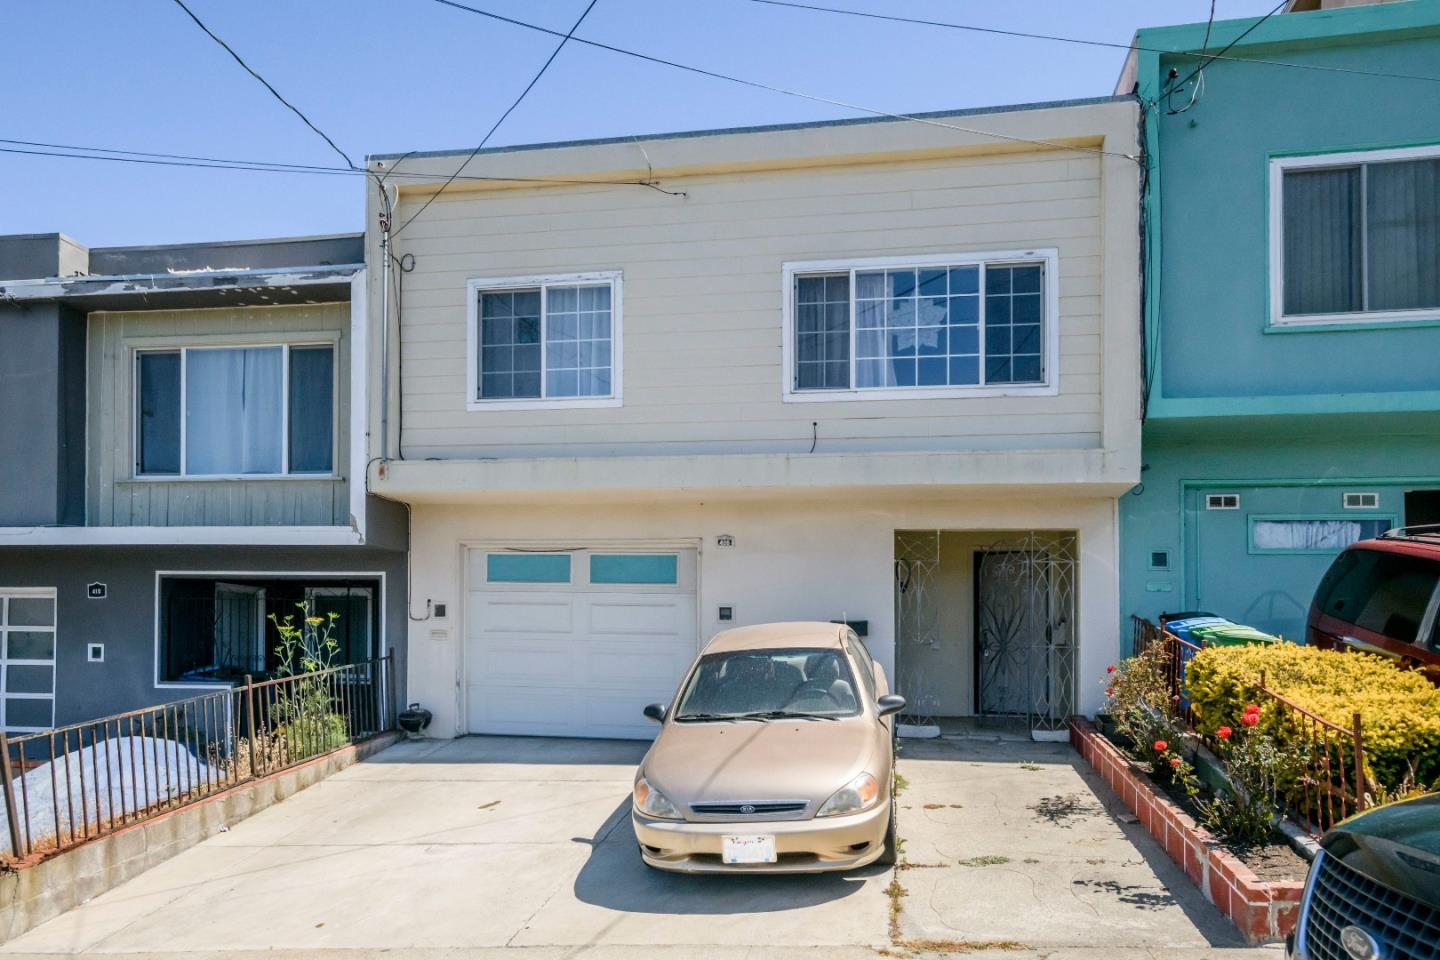 406 Campbell Ave, San Francisco, CA 94134 - MLS 81714657 - Coldwell ...